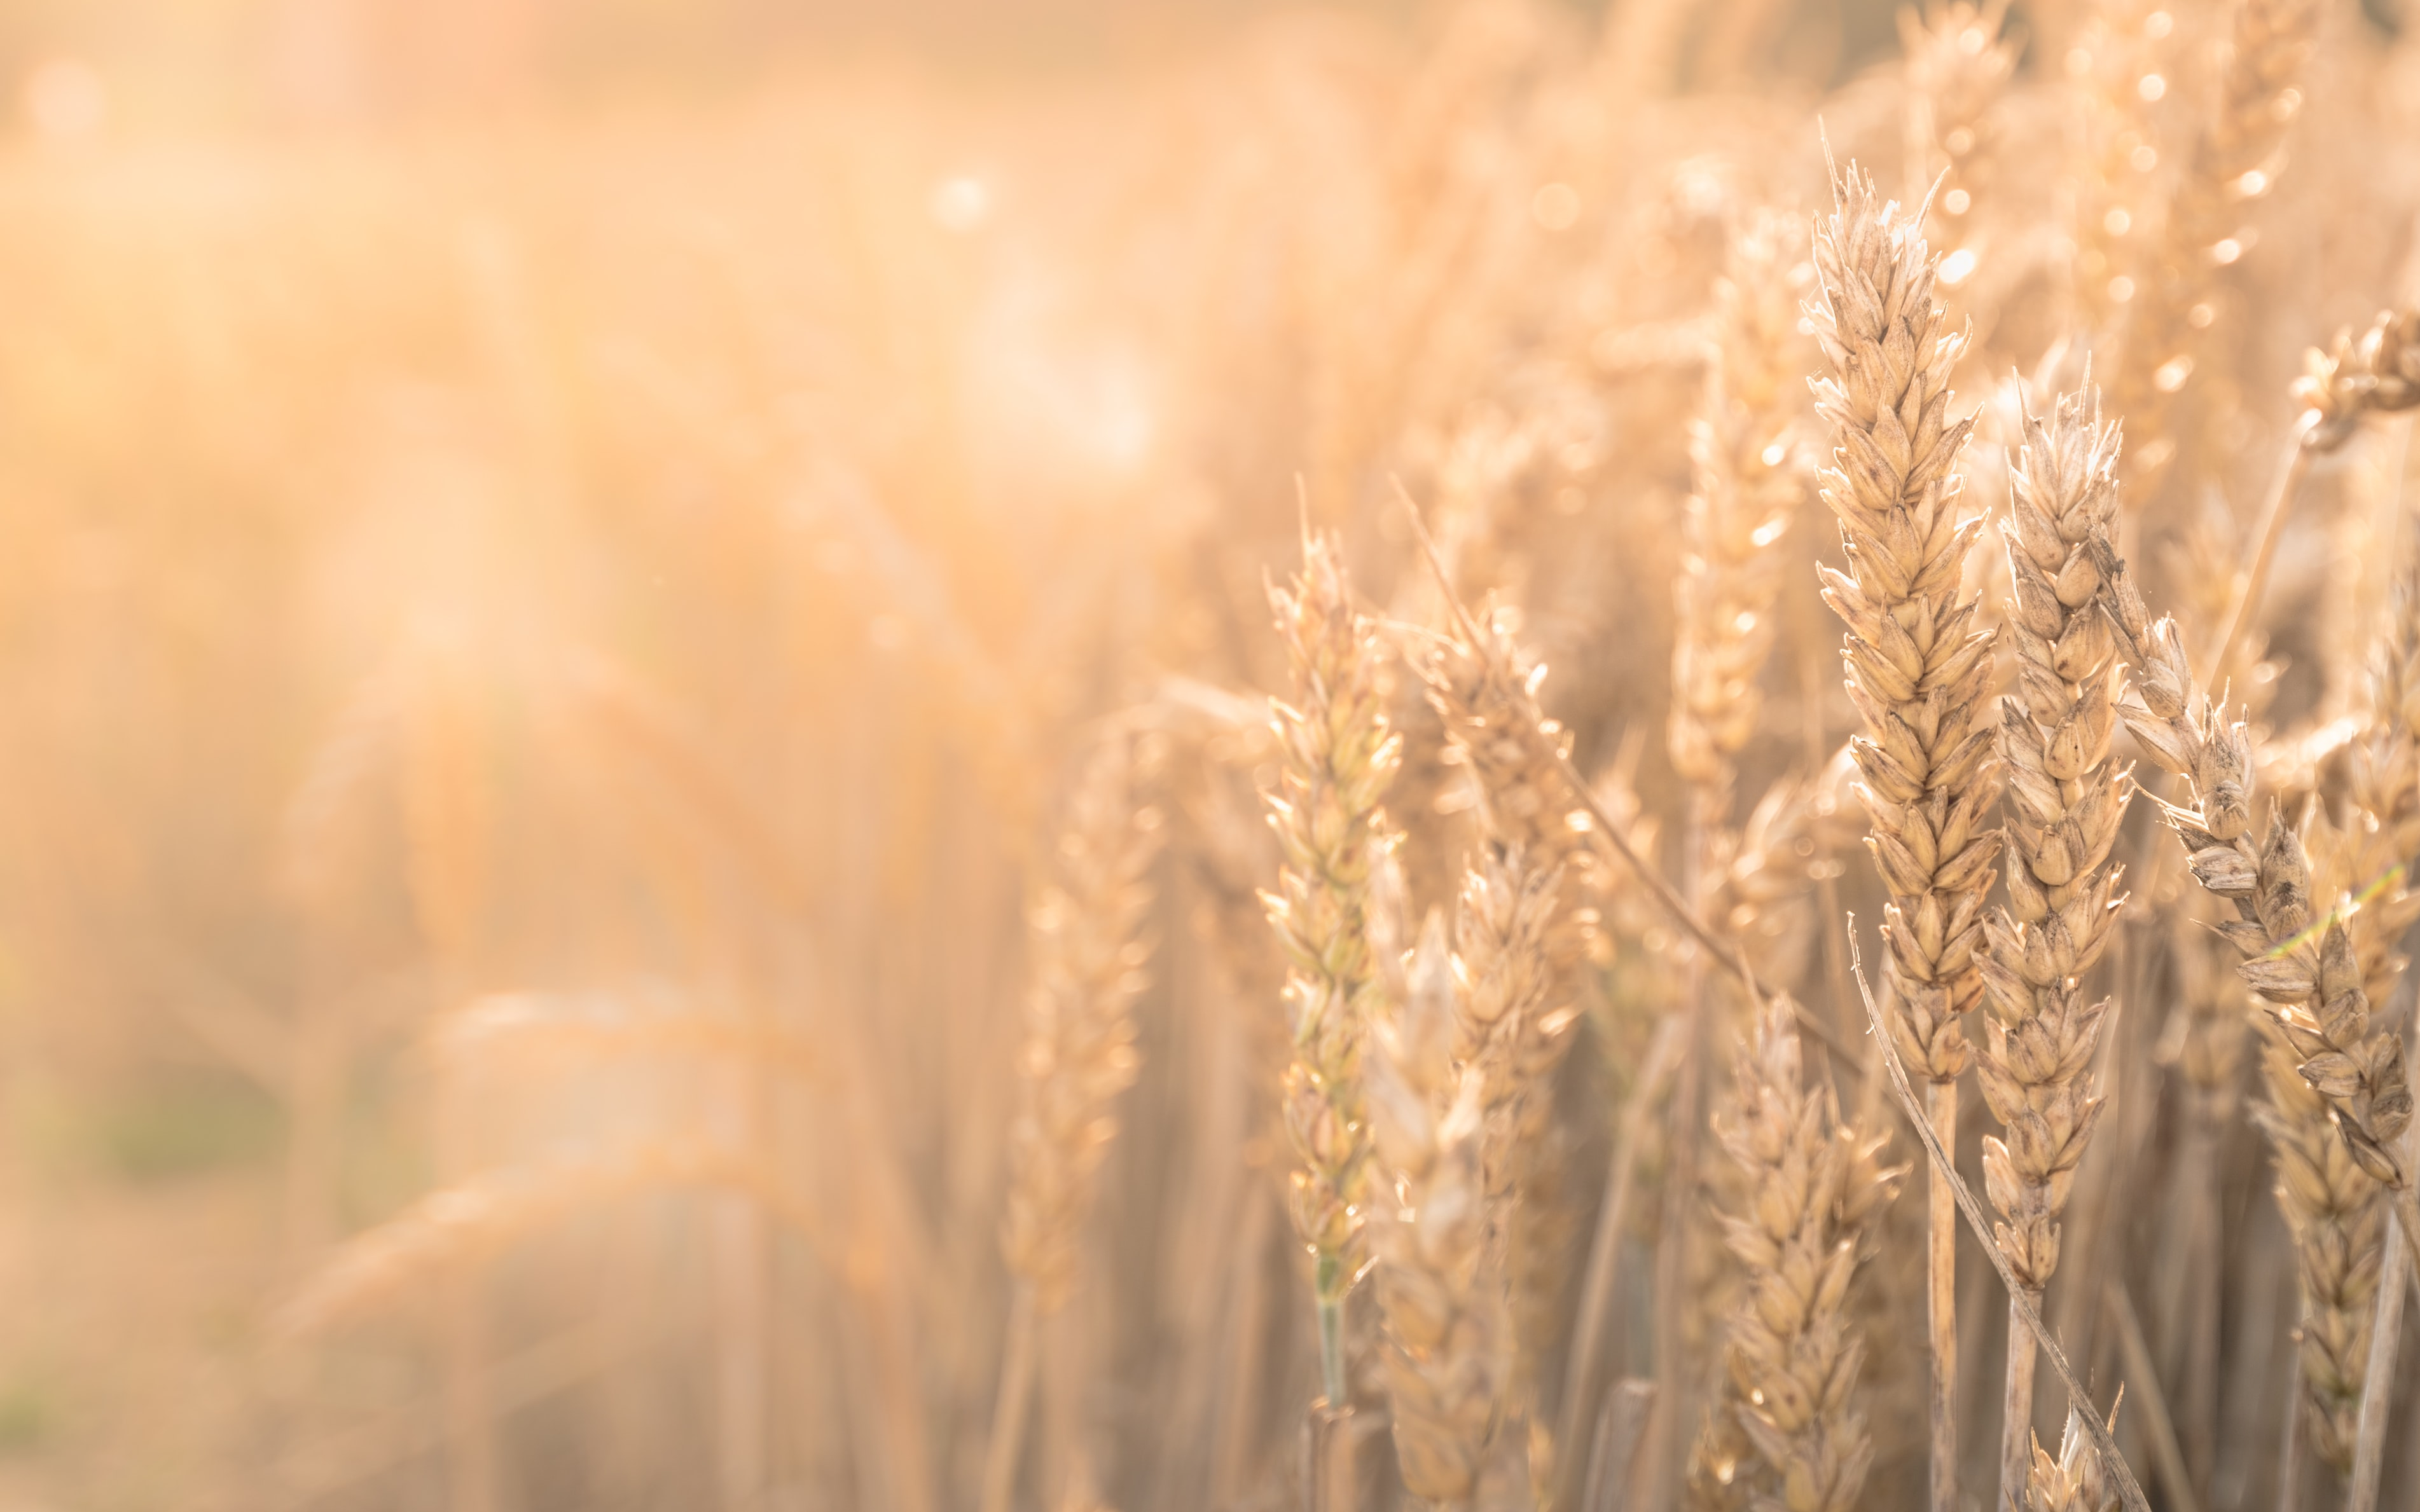 Sunshine glows on a field of wheat plants